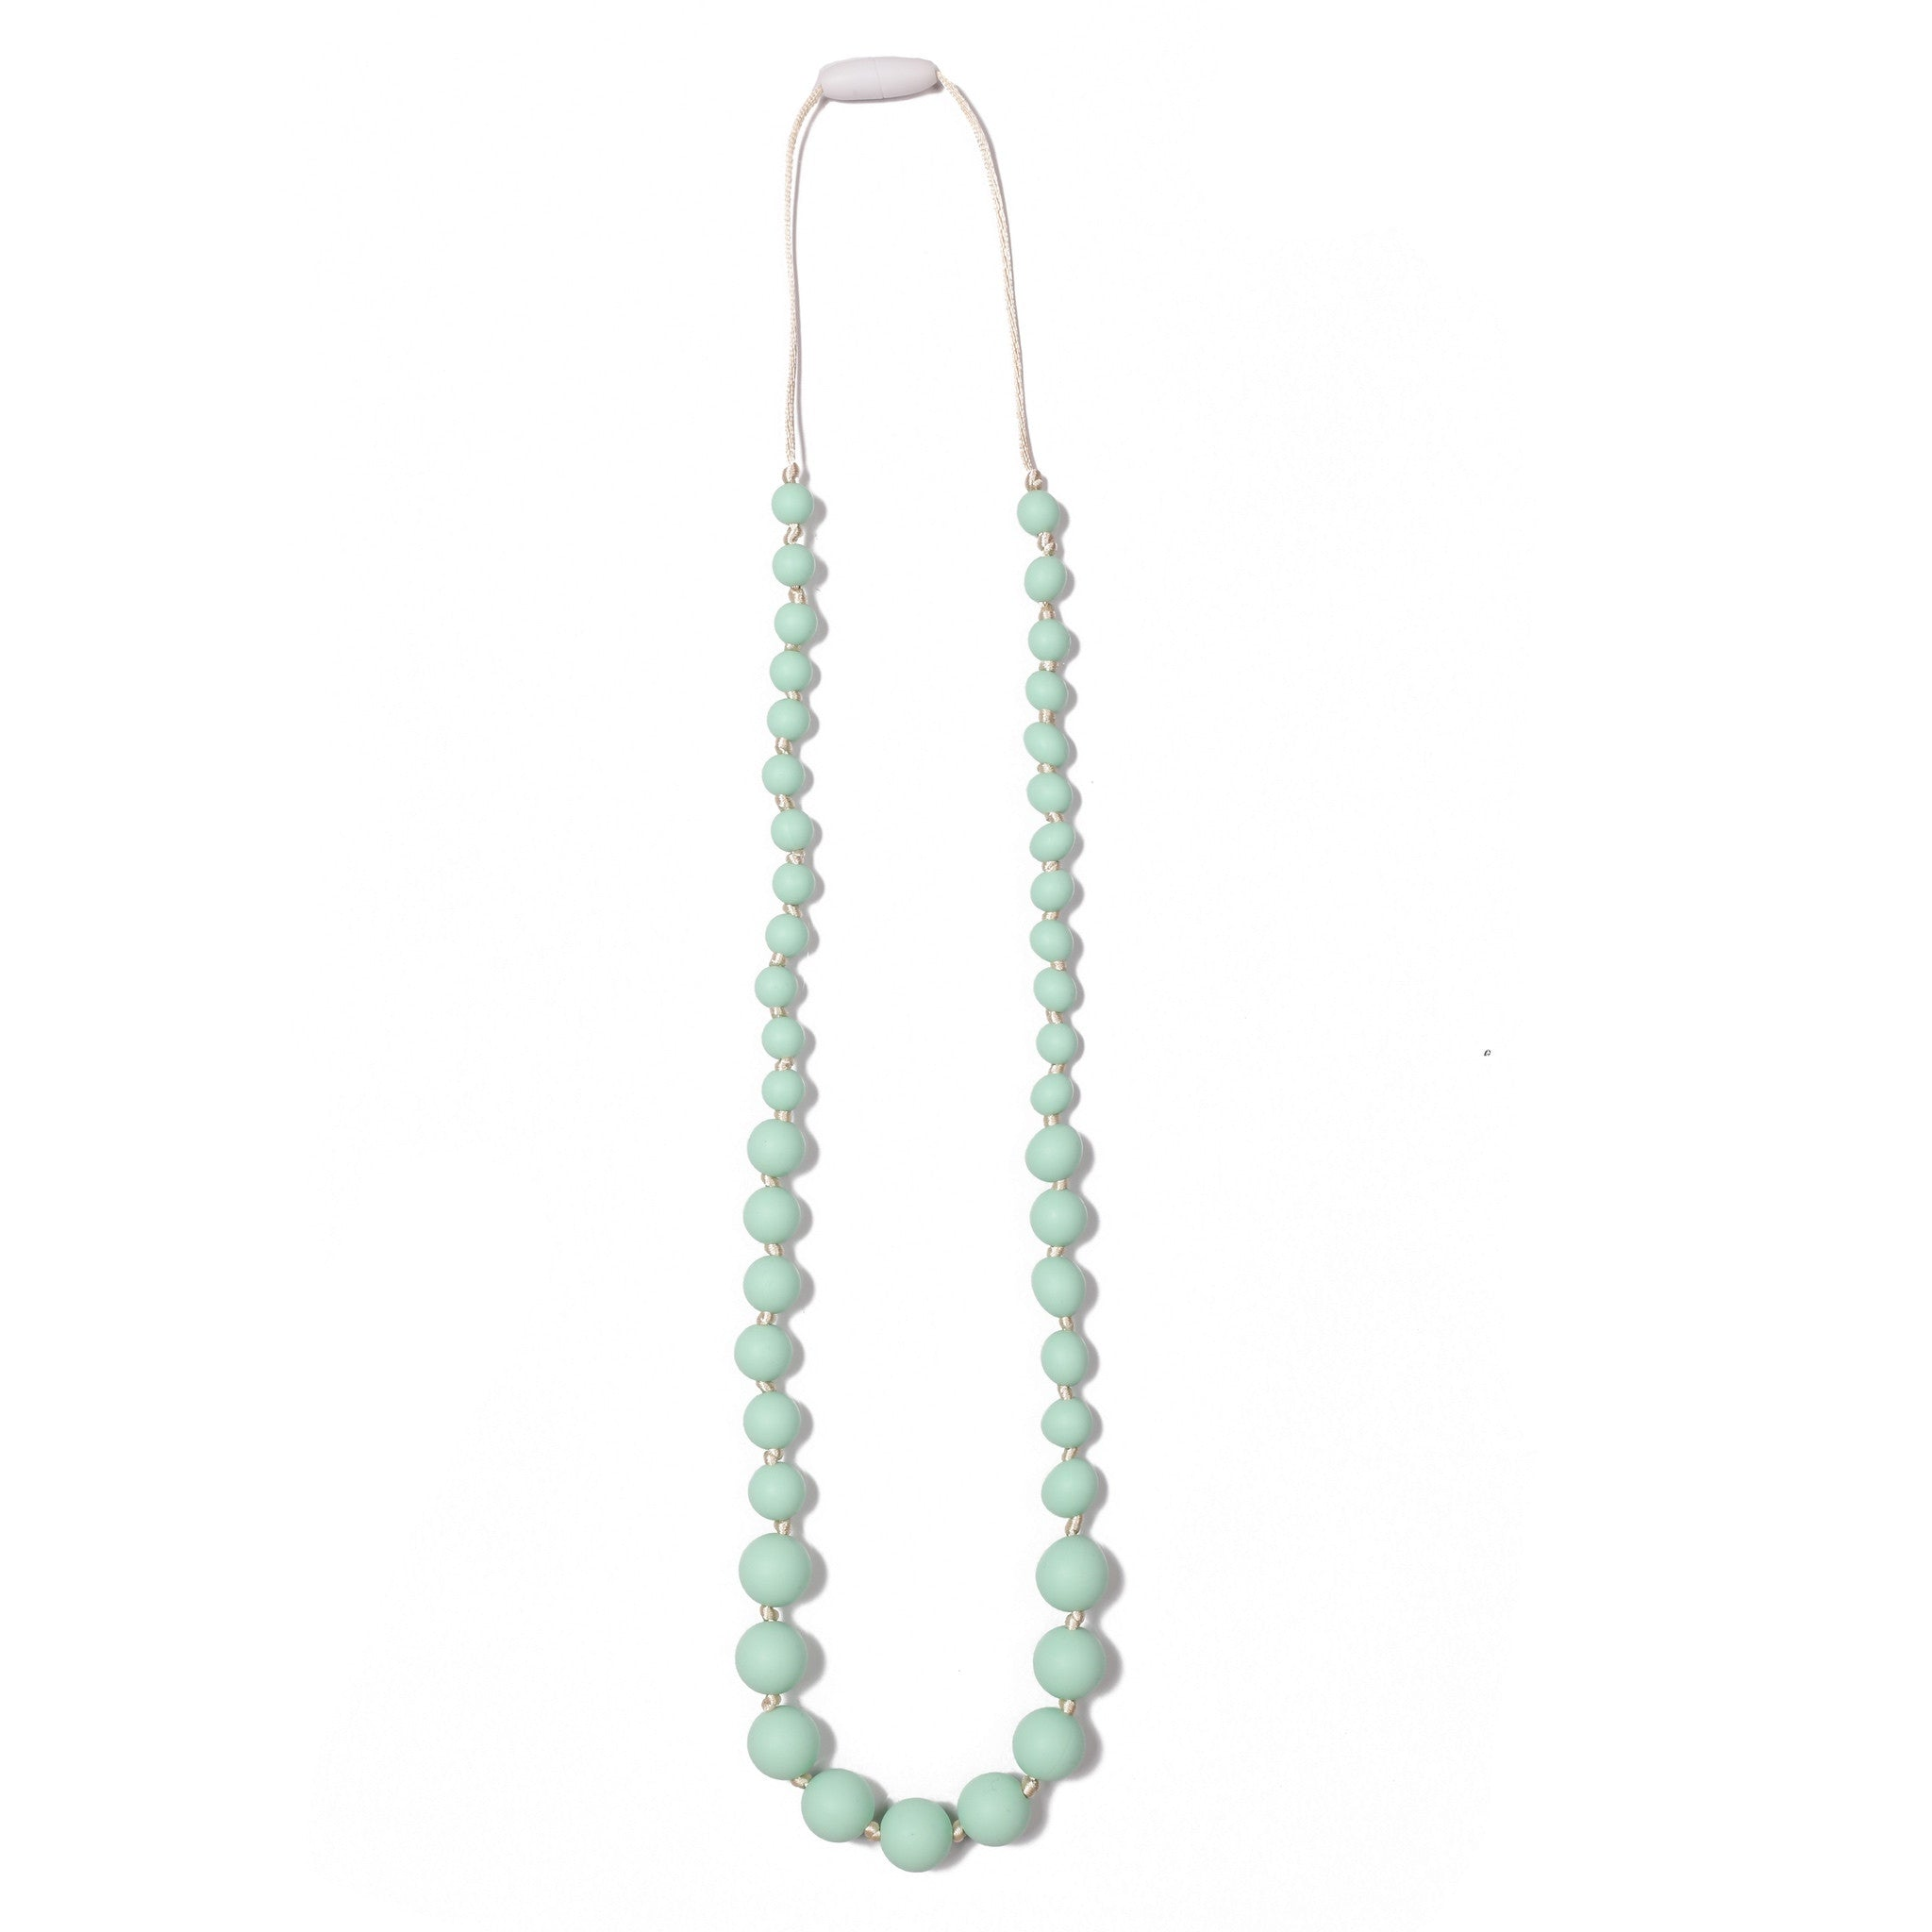 Audrey Teething Necklace - Mint